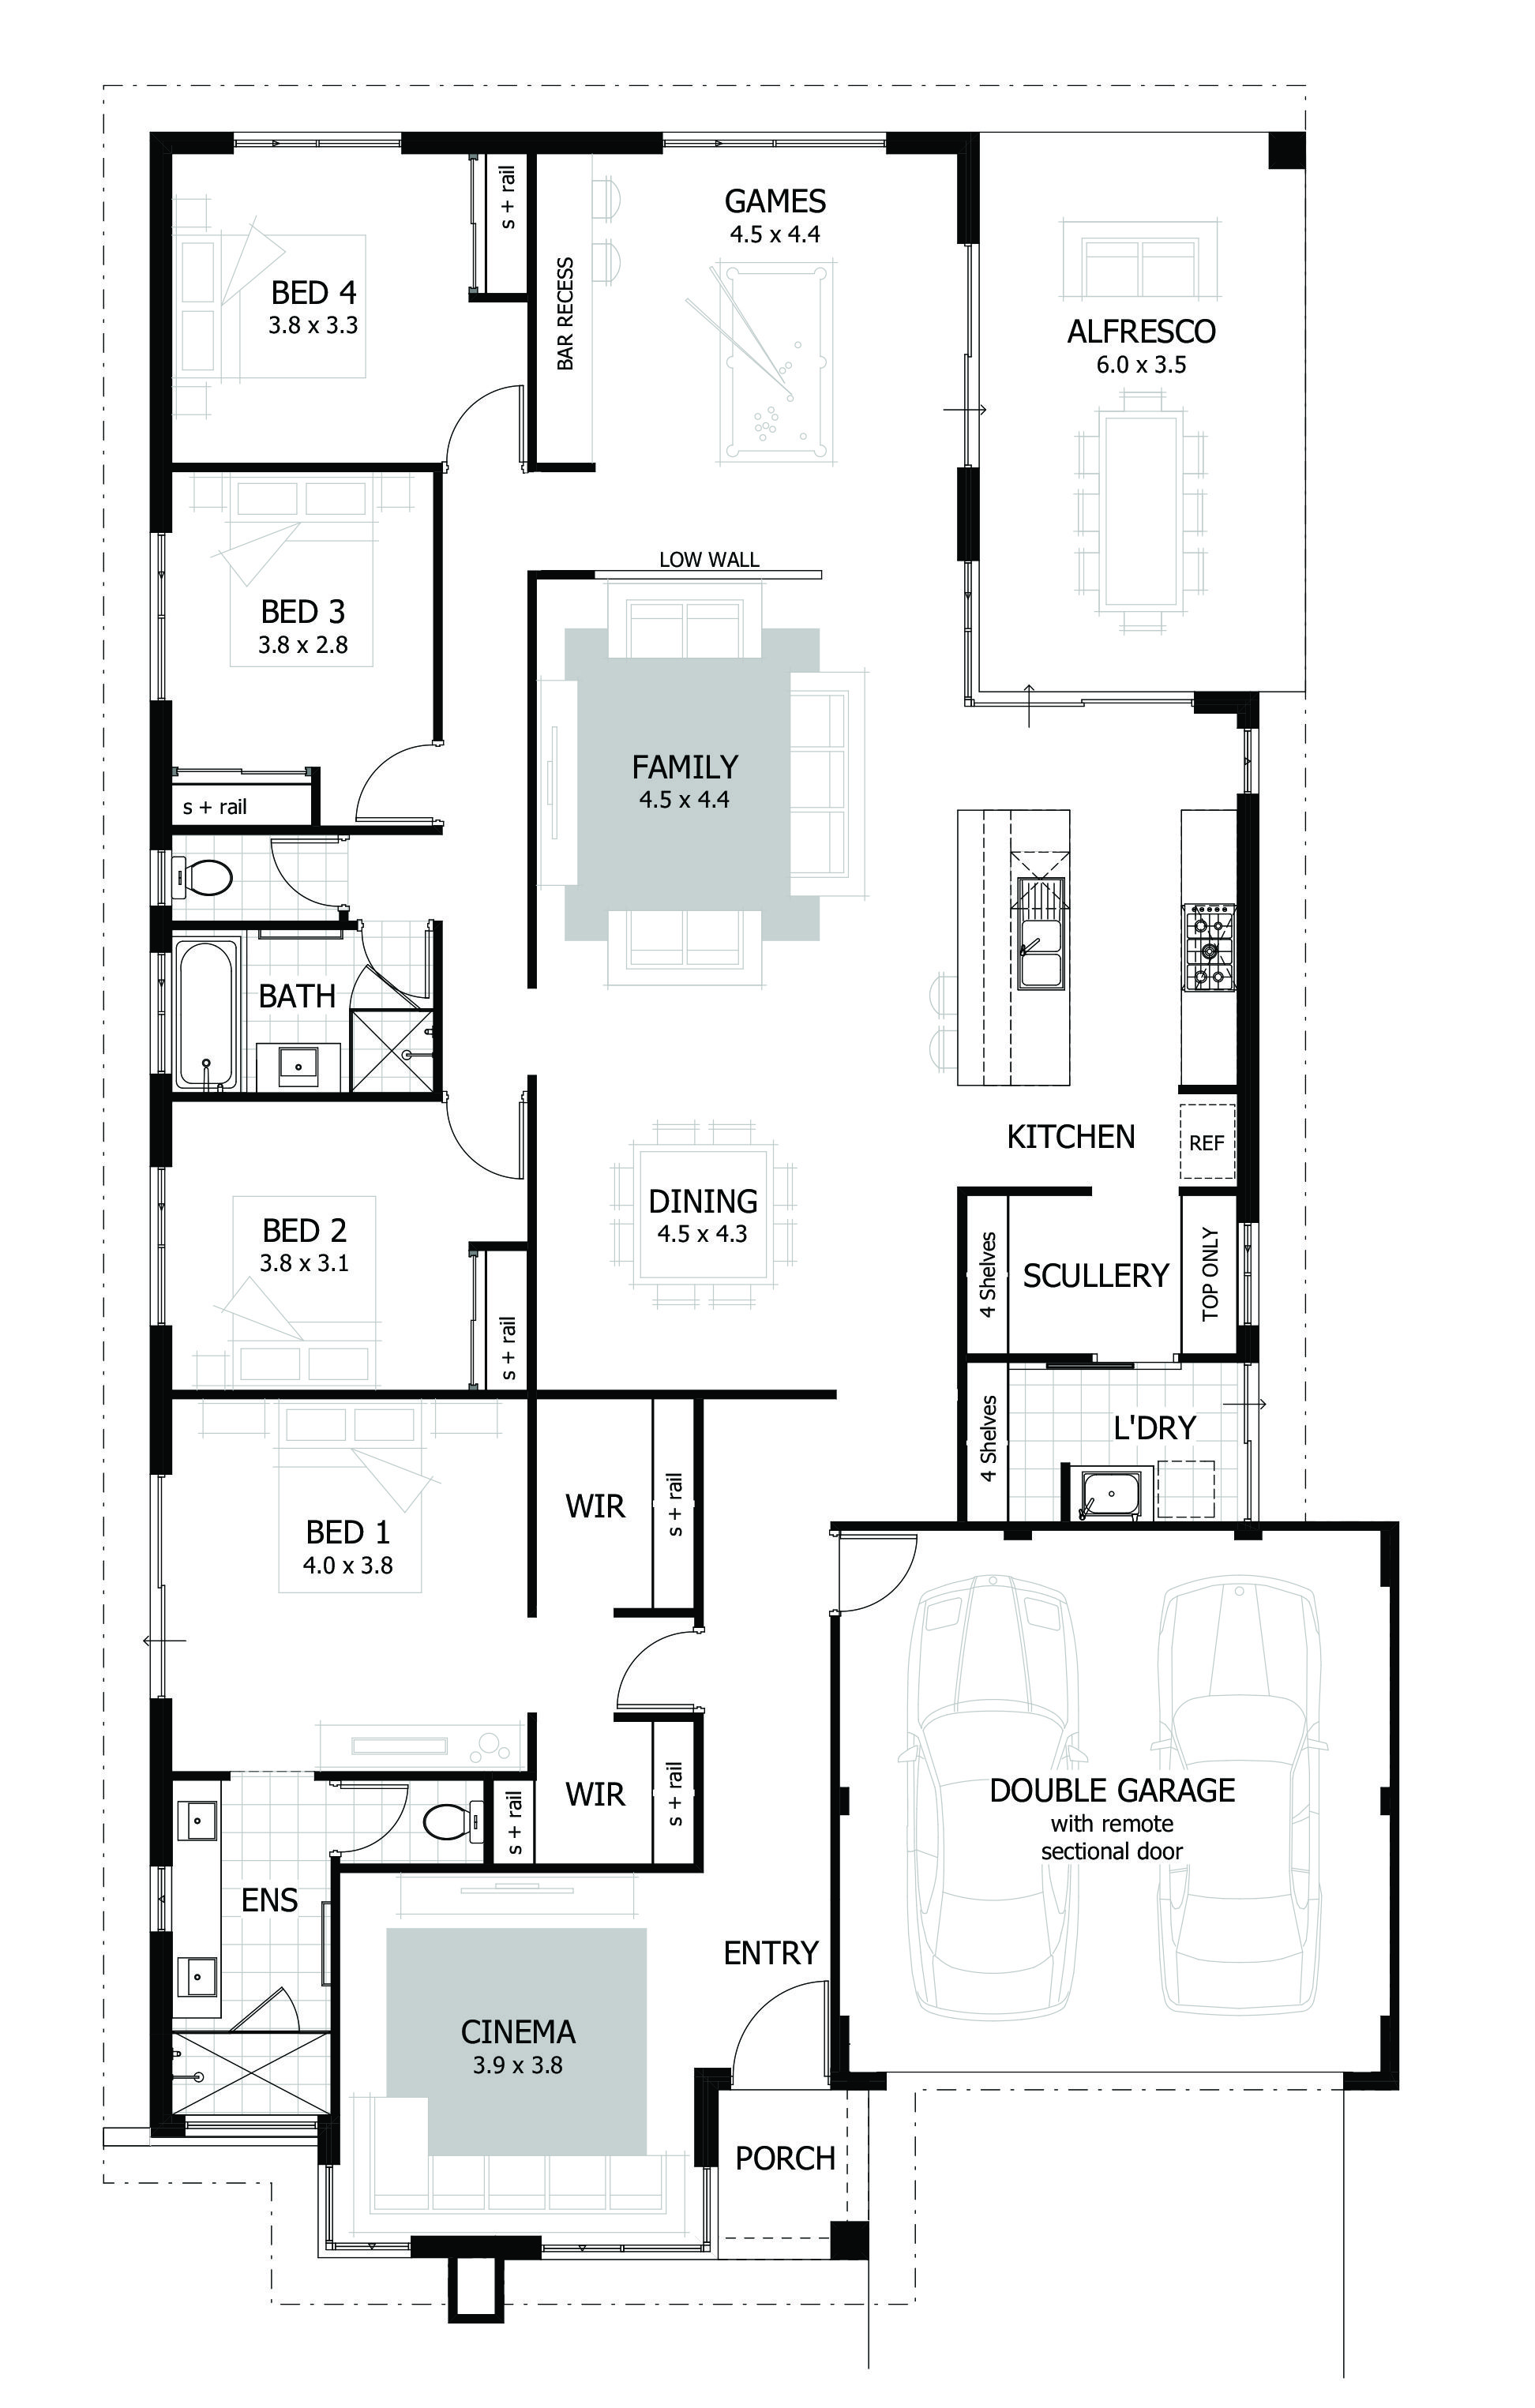 bedroom house plans dream floor home design also pin by amanda clark on new ideas in pinterest rh